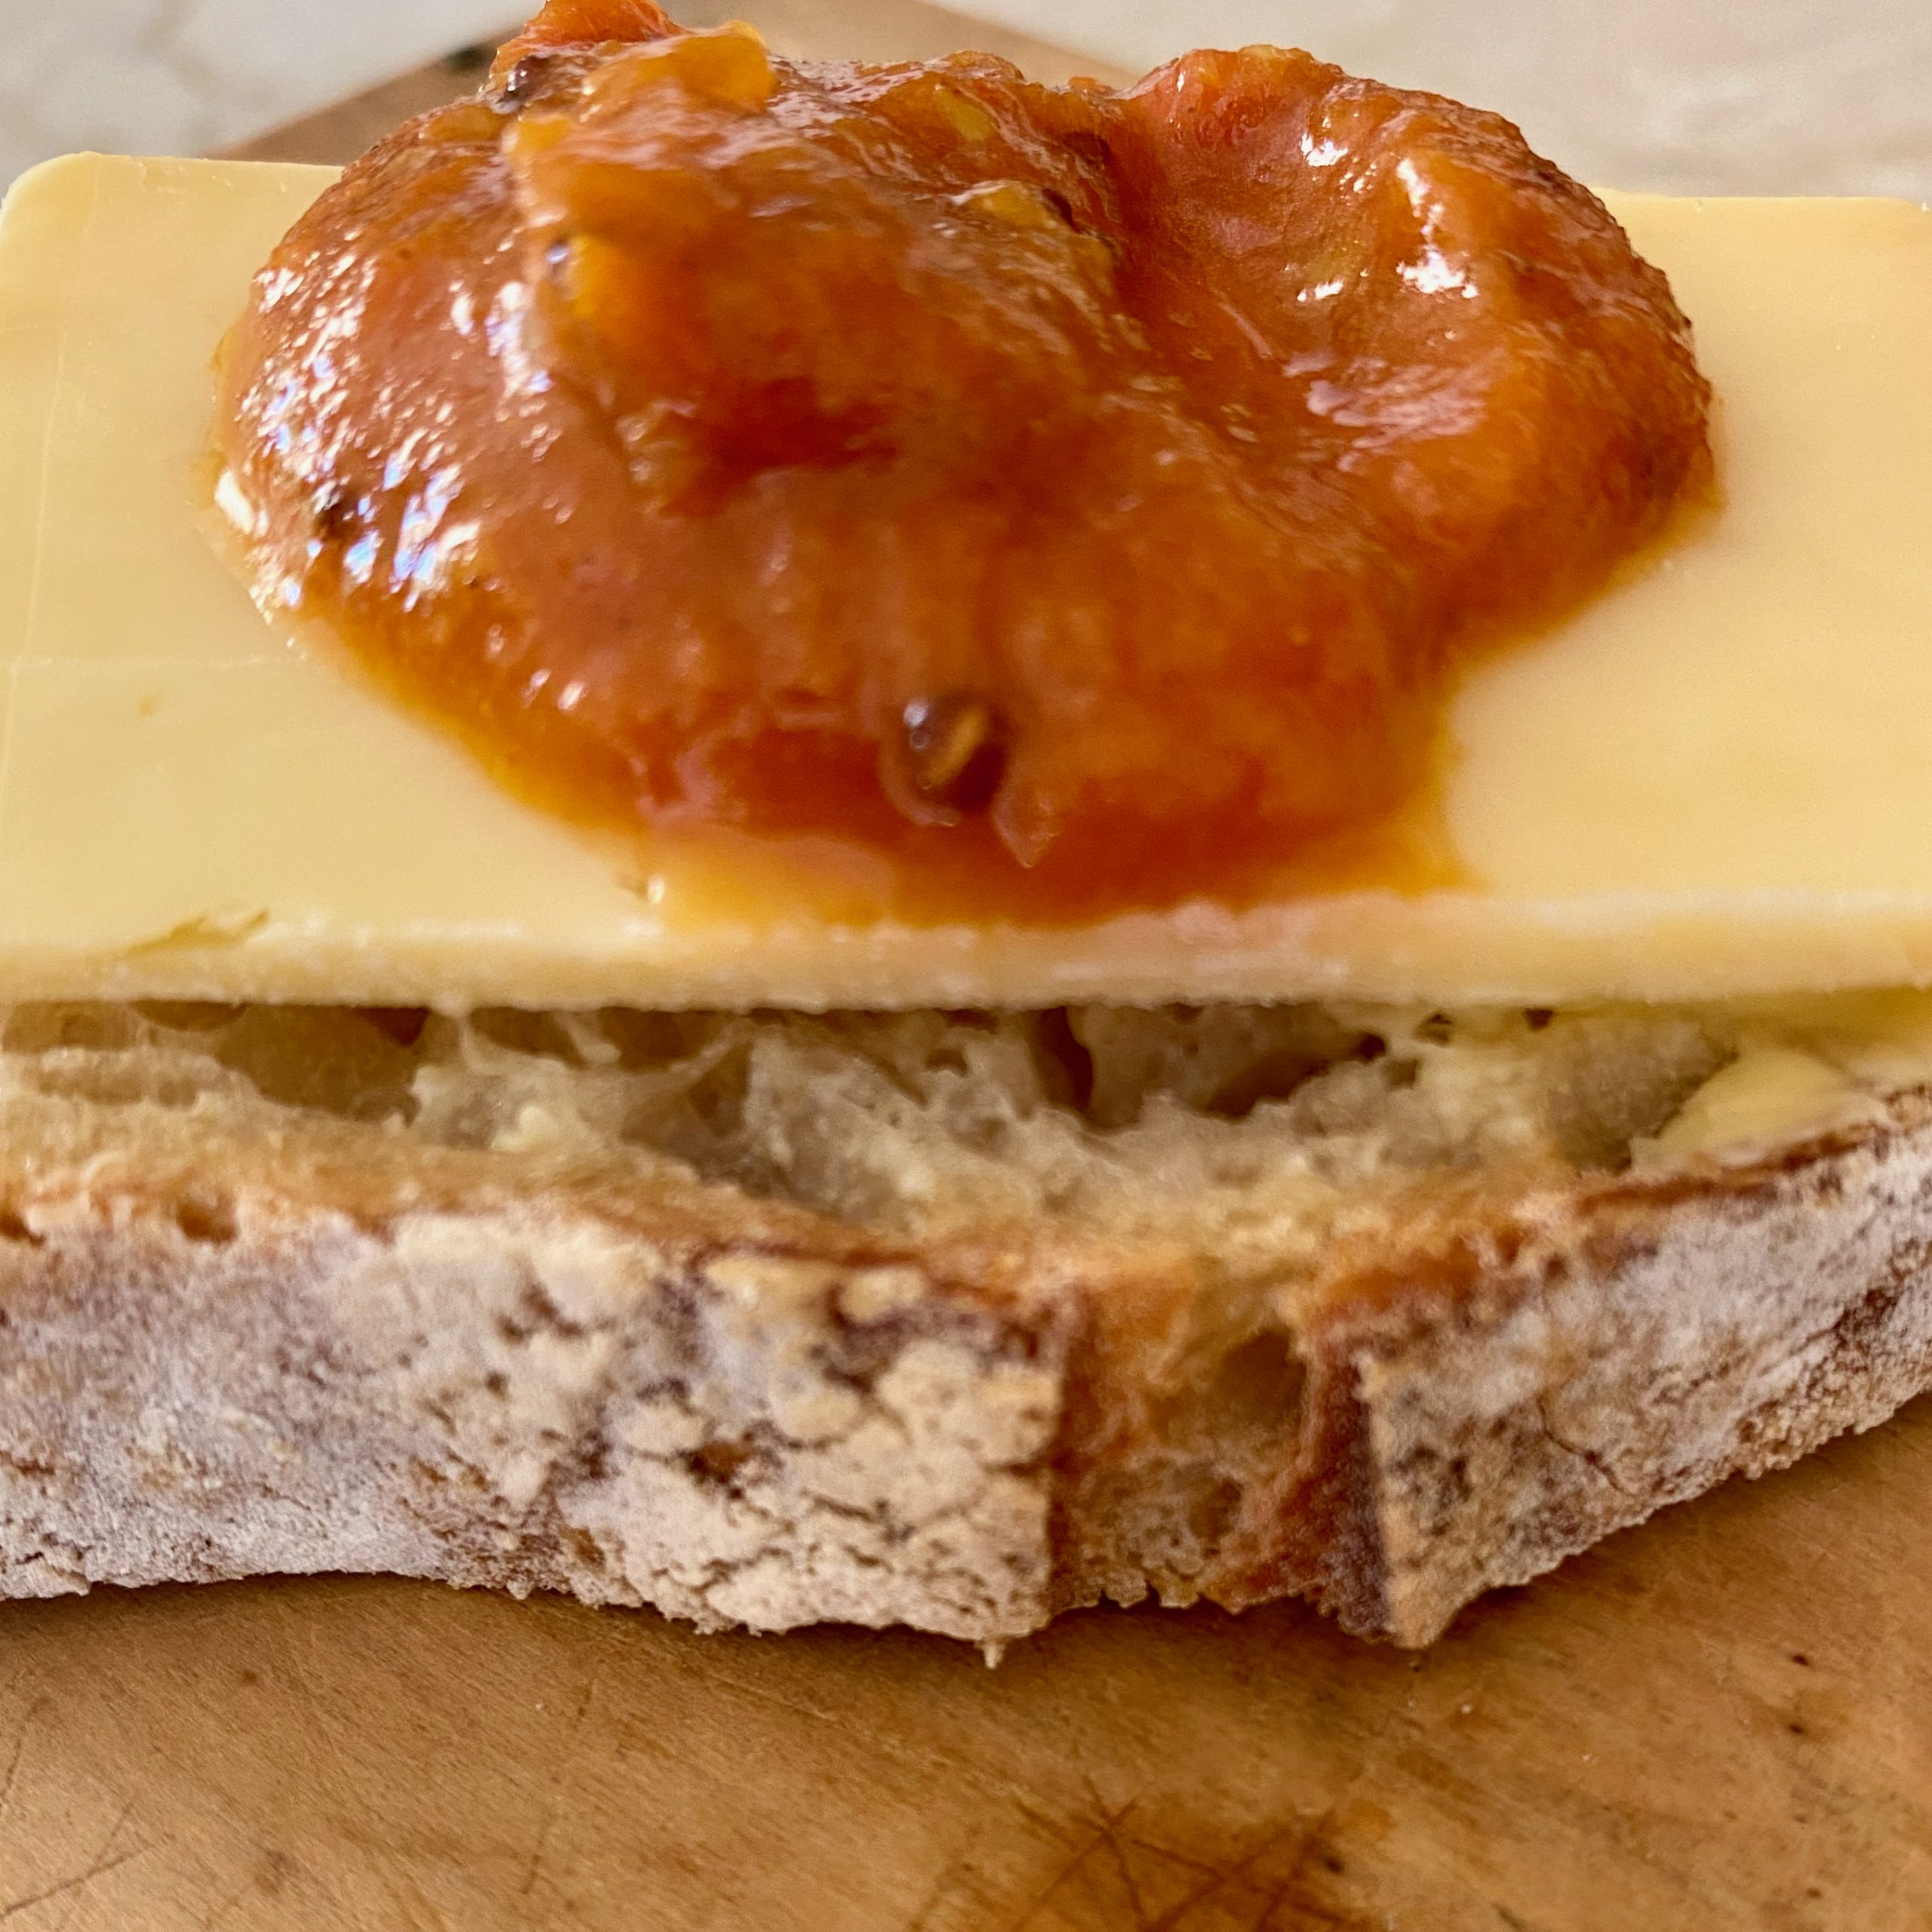 A slice of smoked cheddar cheese with pickle